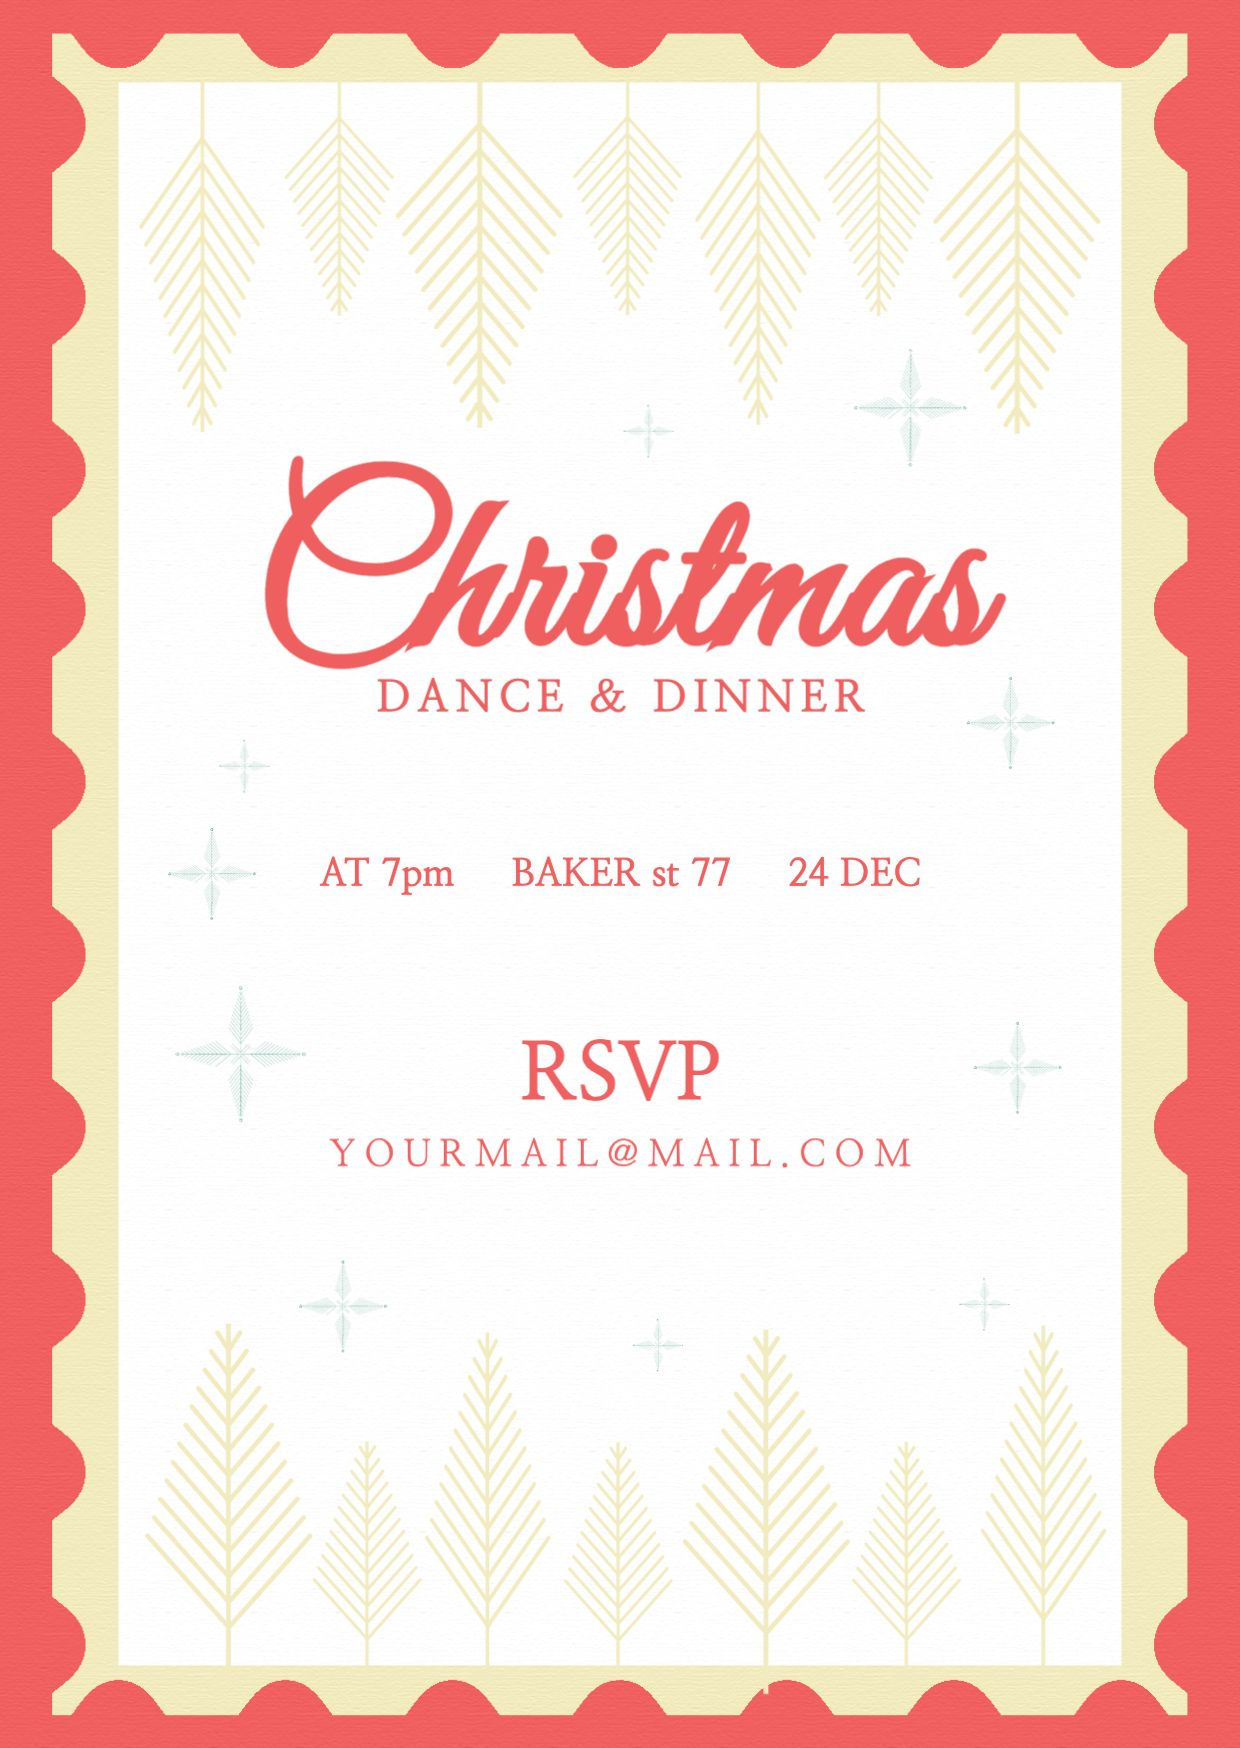 Christmas Dance and Dinner Invitation Template